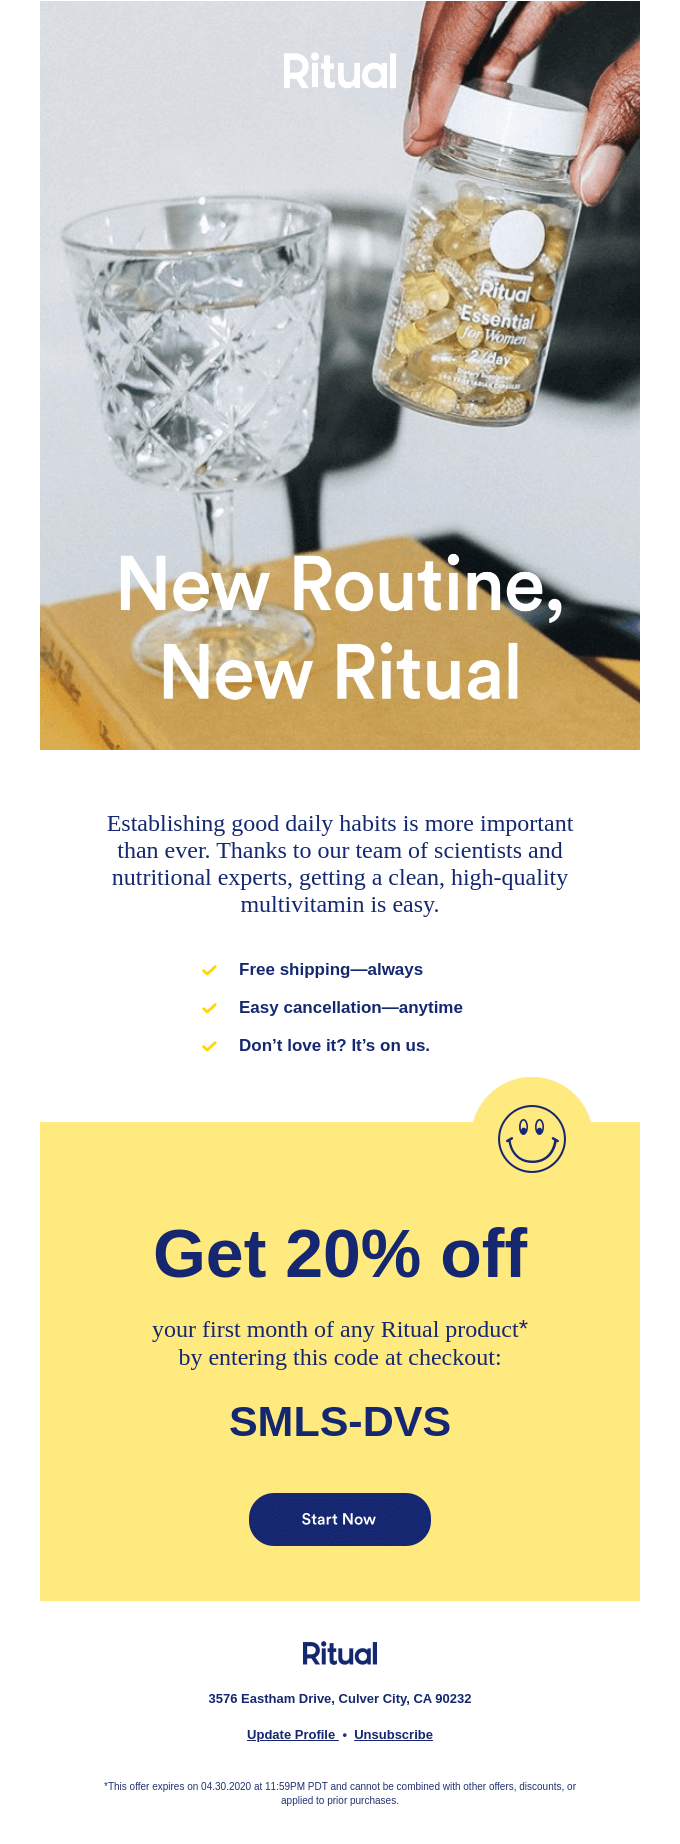 ritual ecommerce email marketing